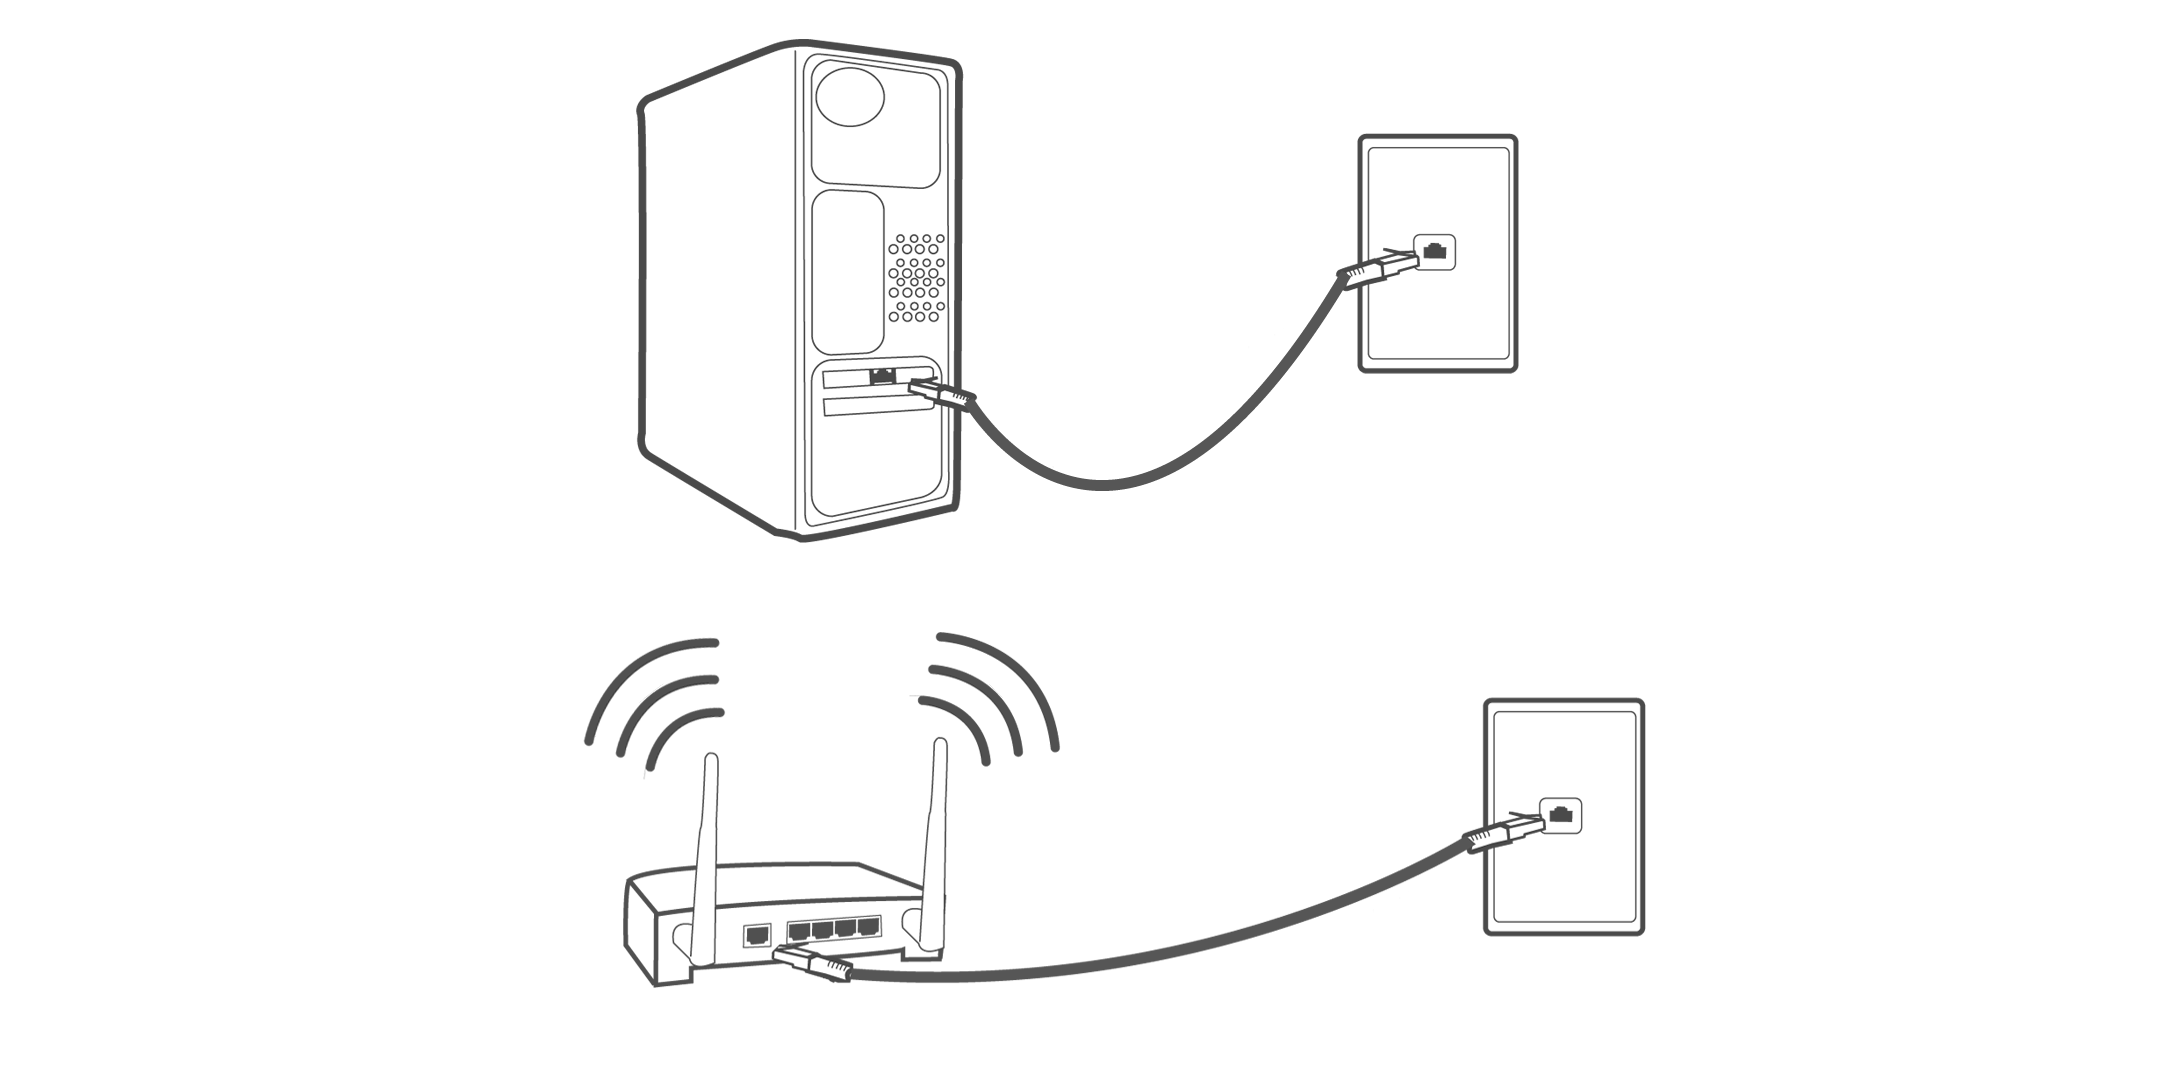 Cable And Ethernet Wall Plate